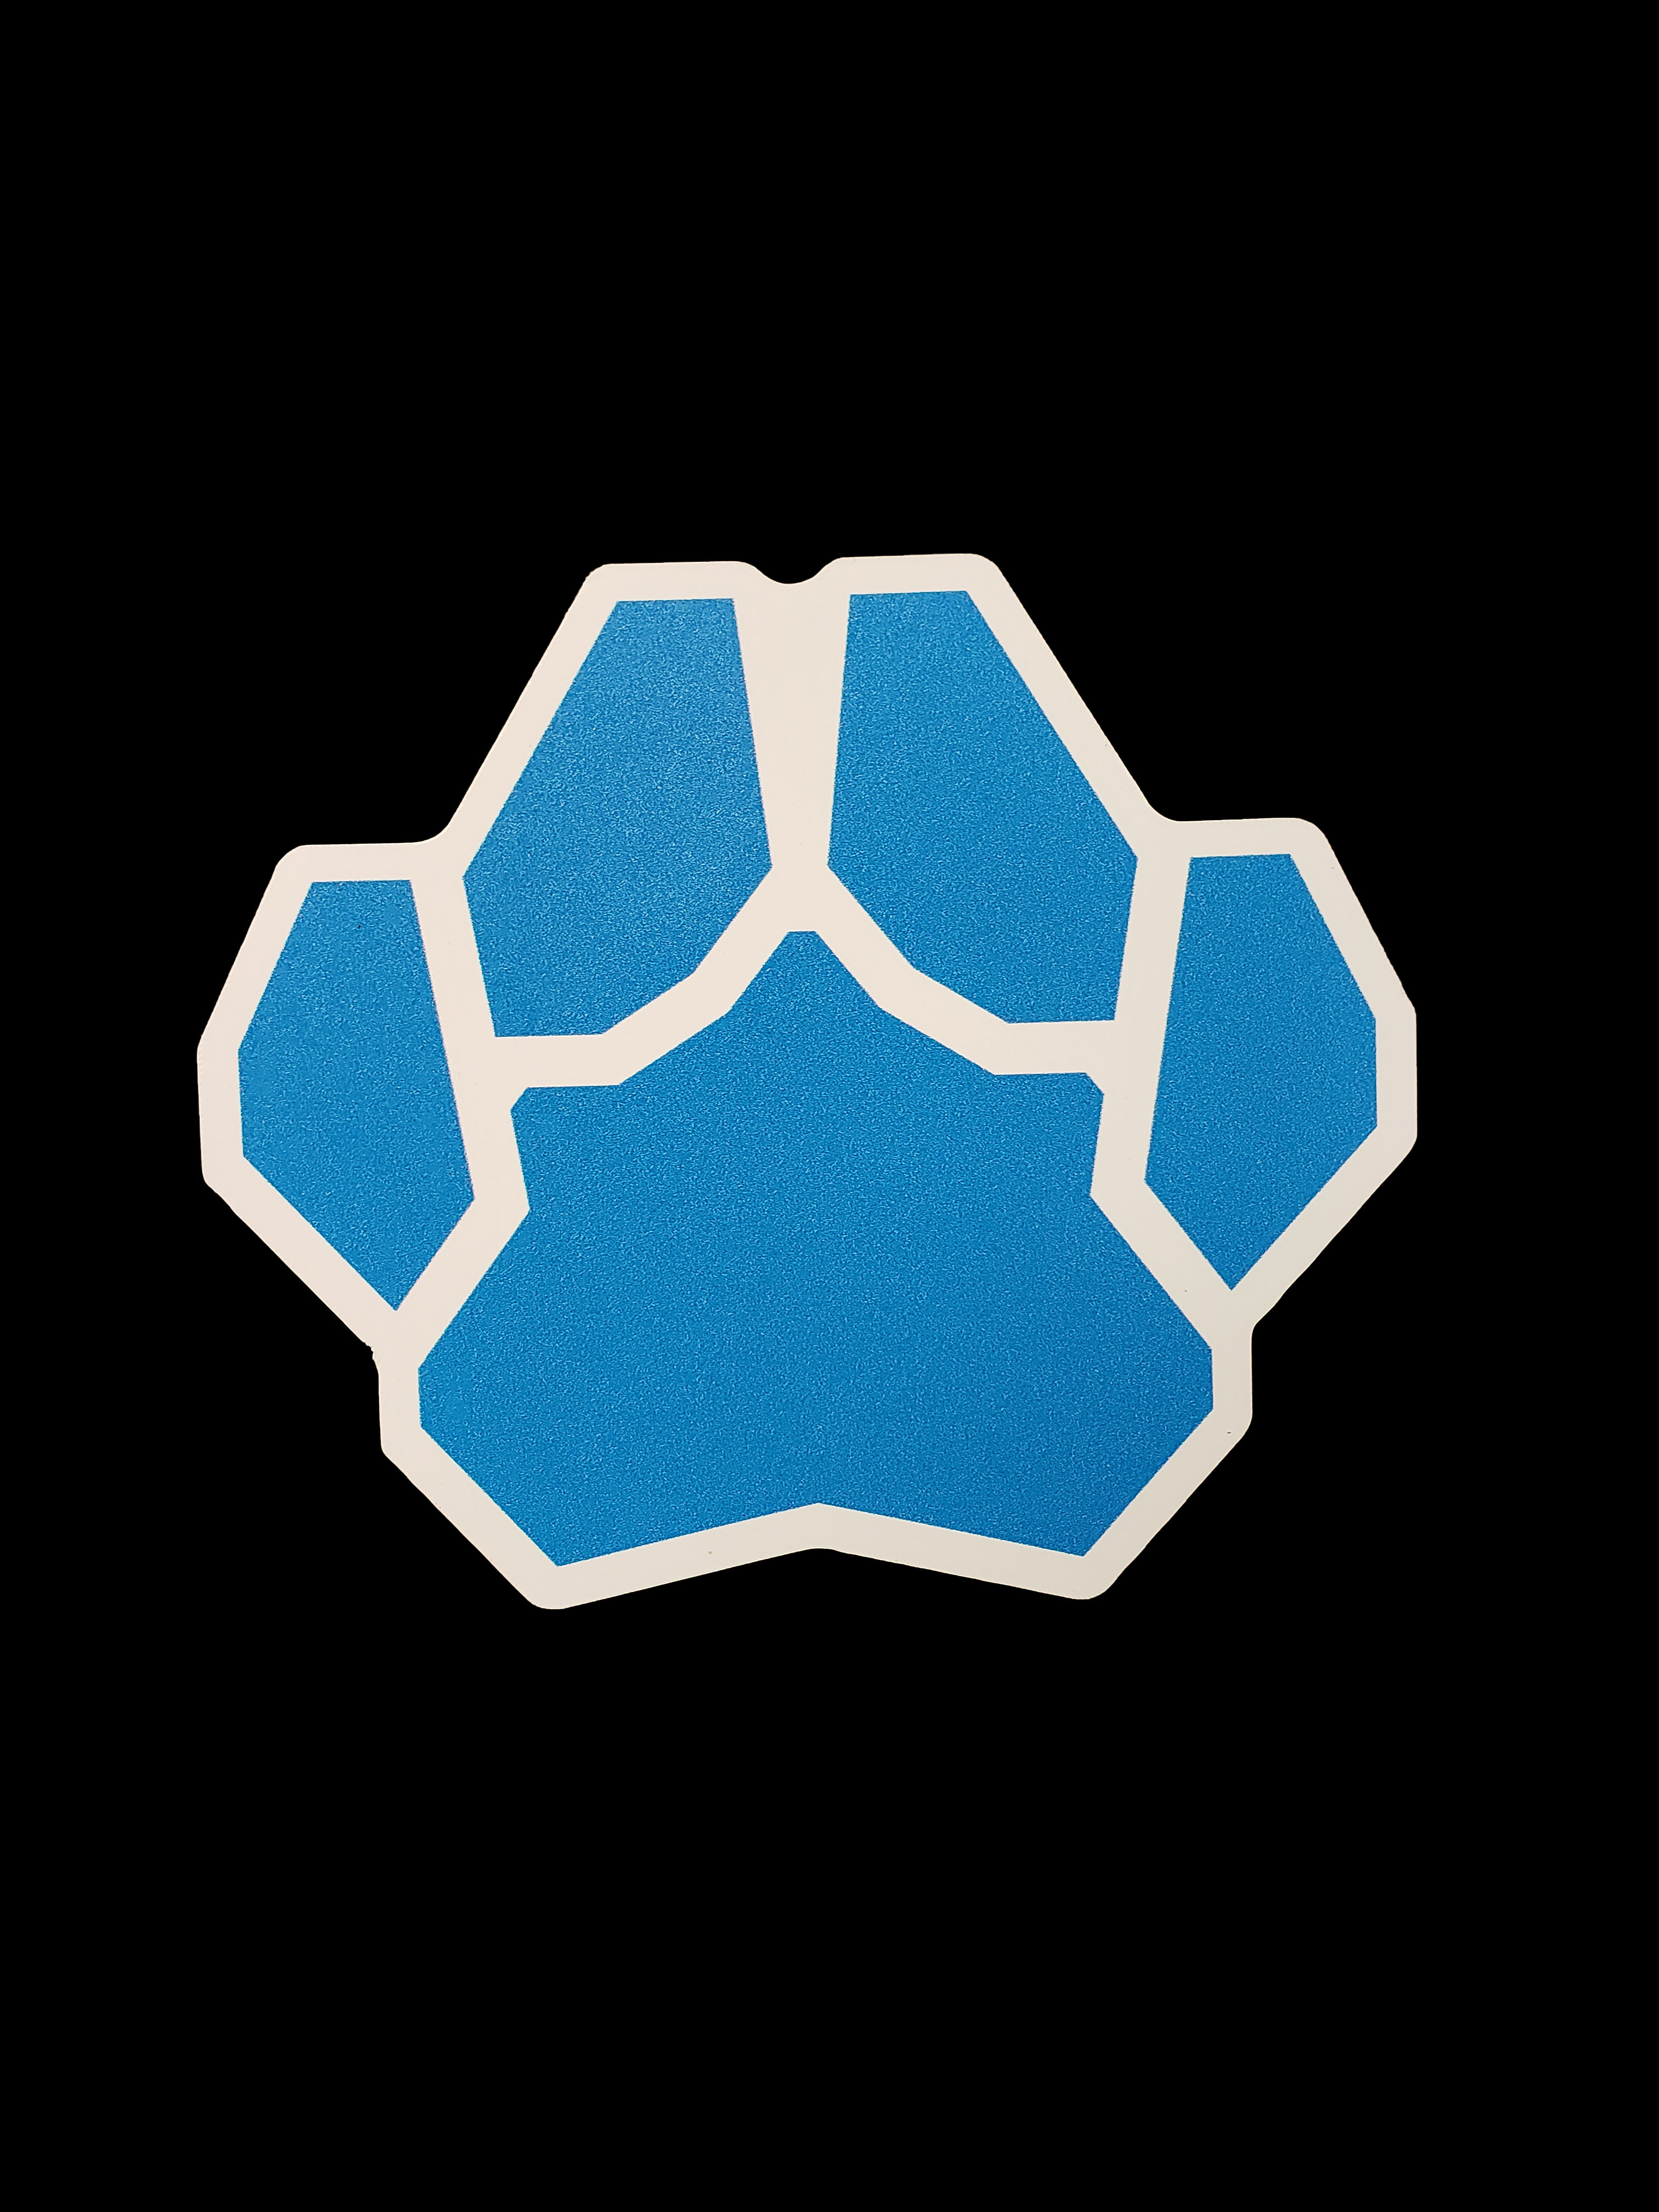 Cover Image For PAW PRINT AUTOMOTIVE MAGNET